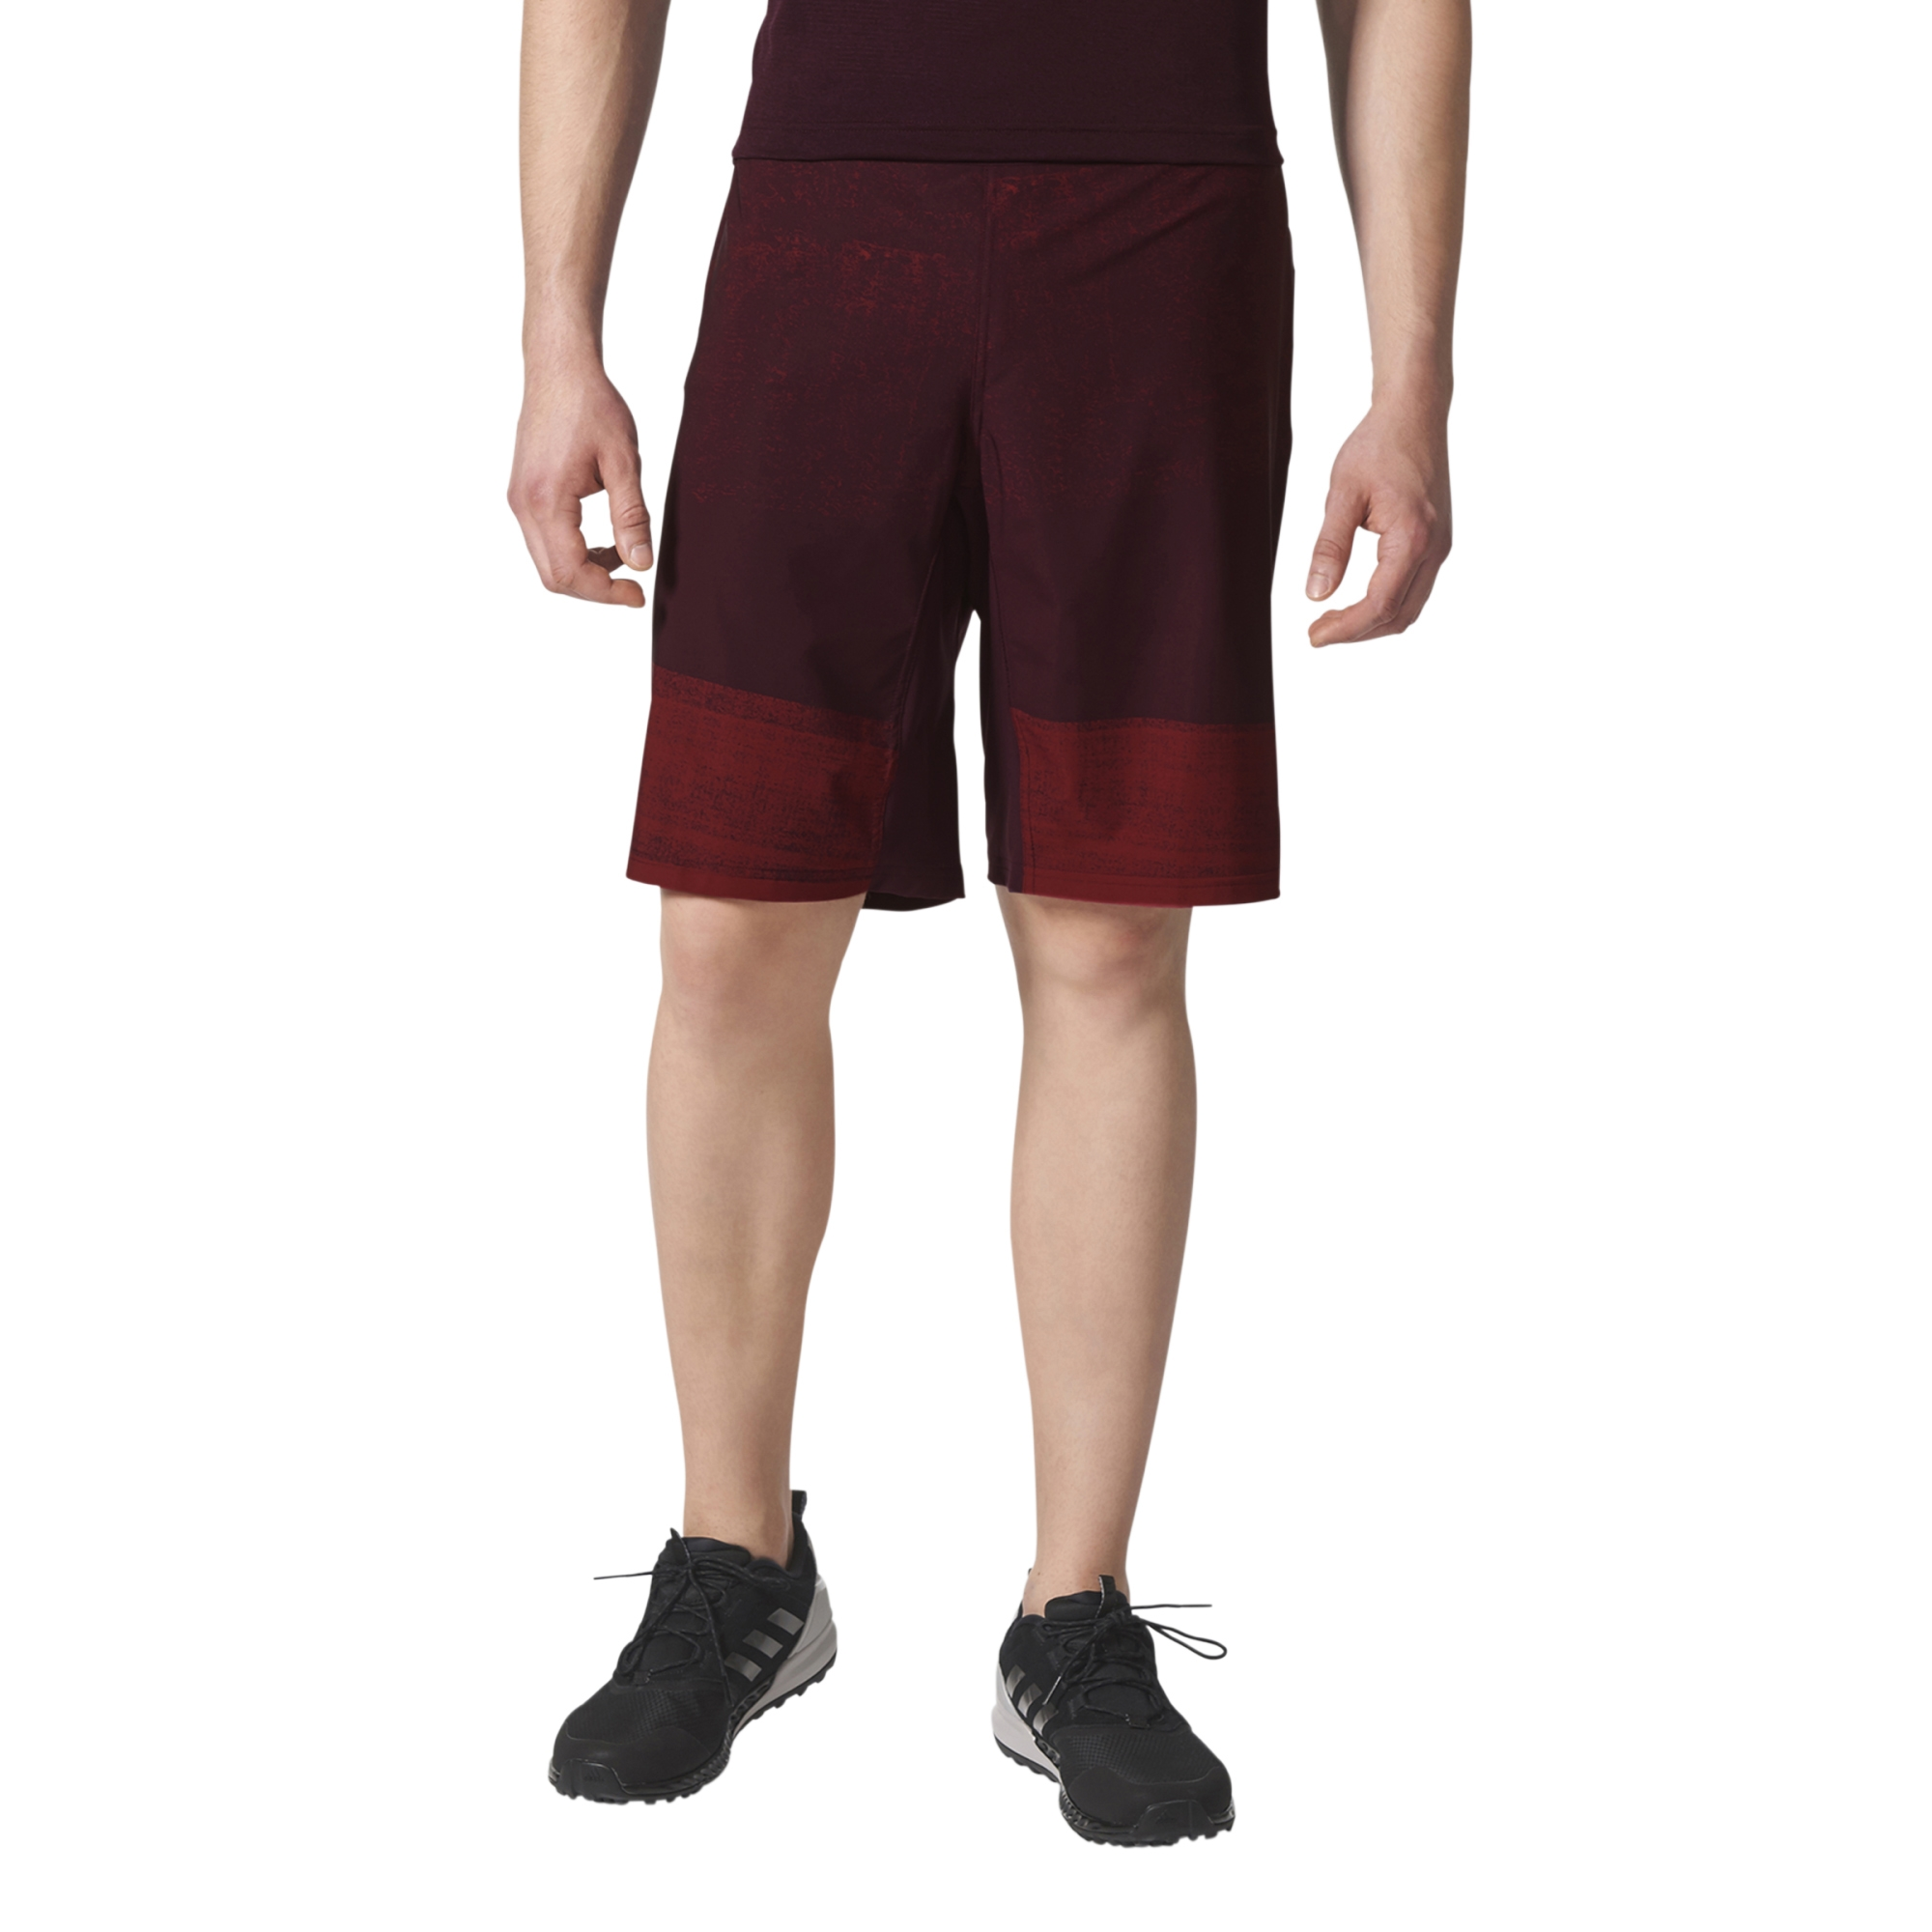 84ad99ad75cf7 Short Adidas Performance Crazytrain Graphic Short Homme Rouge ...